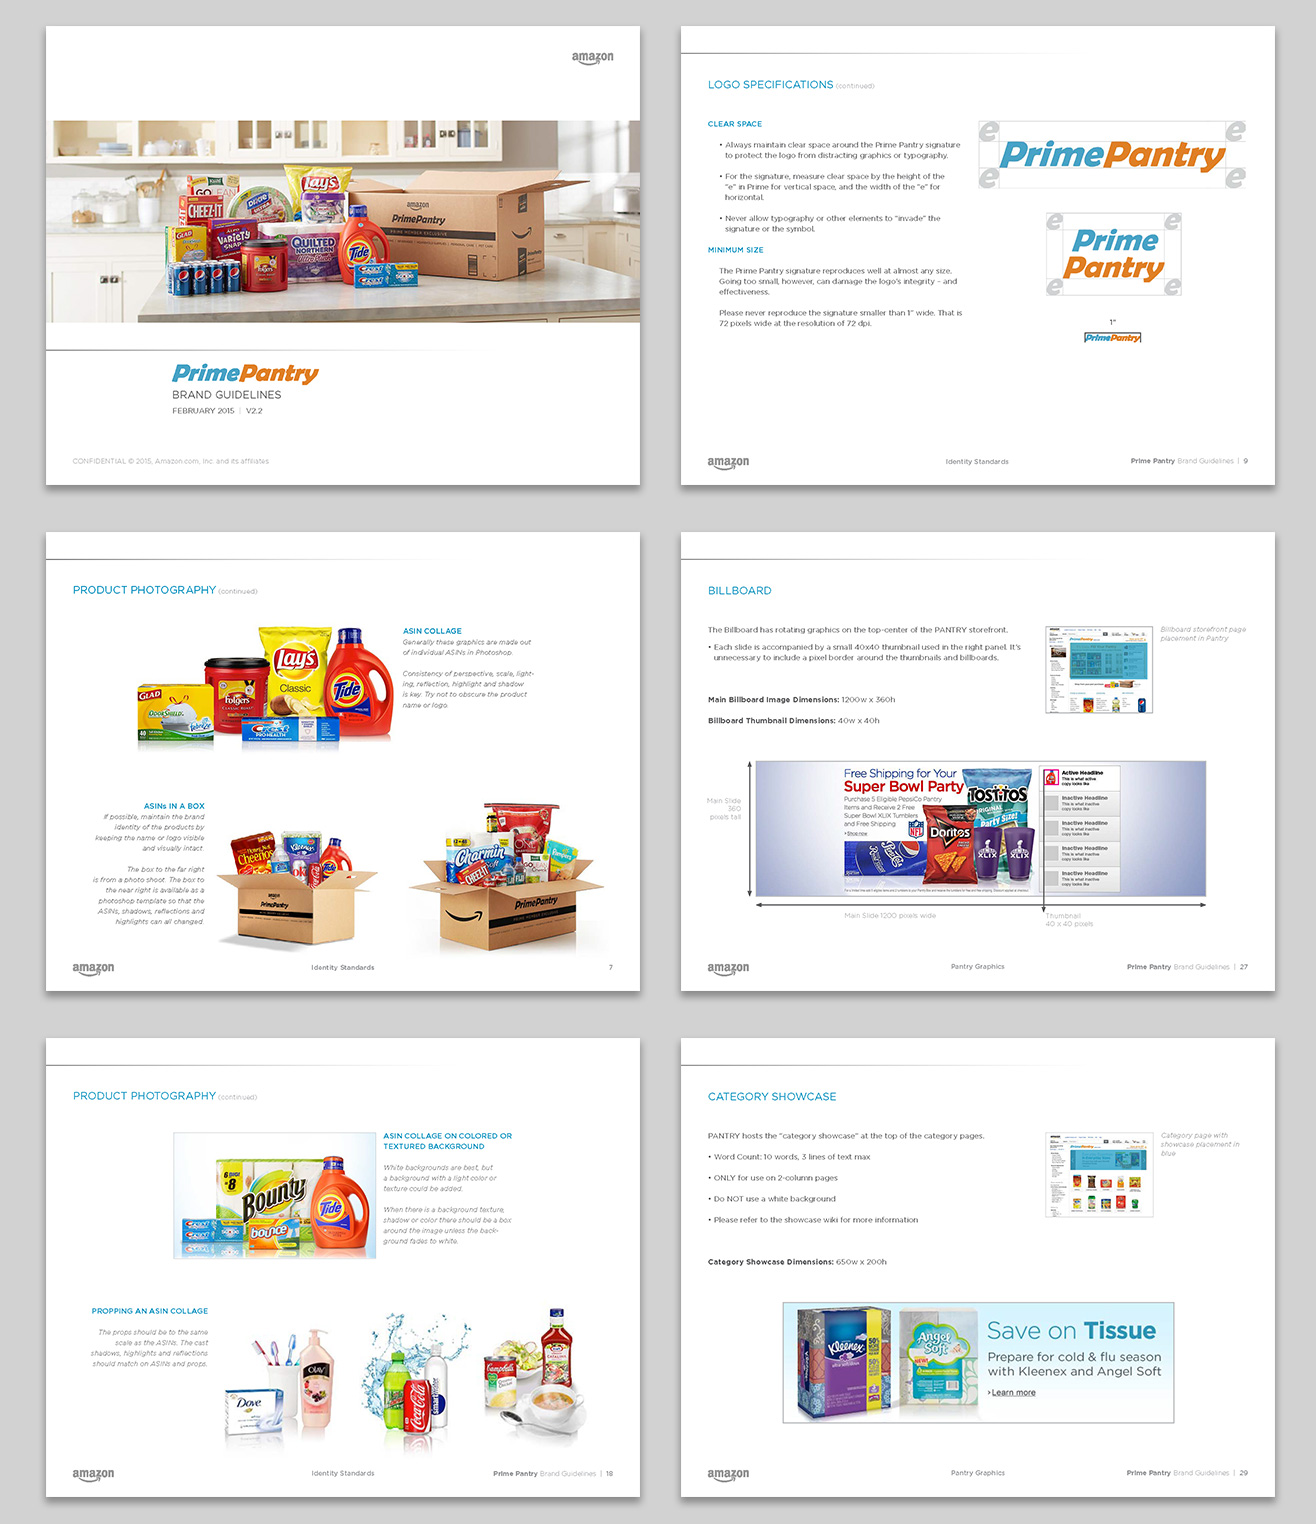 PrimePantry_brandbook_pages